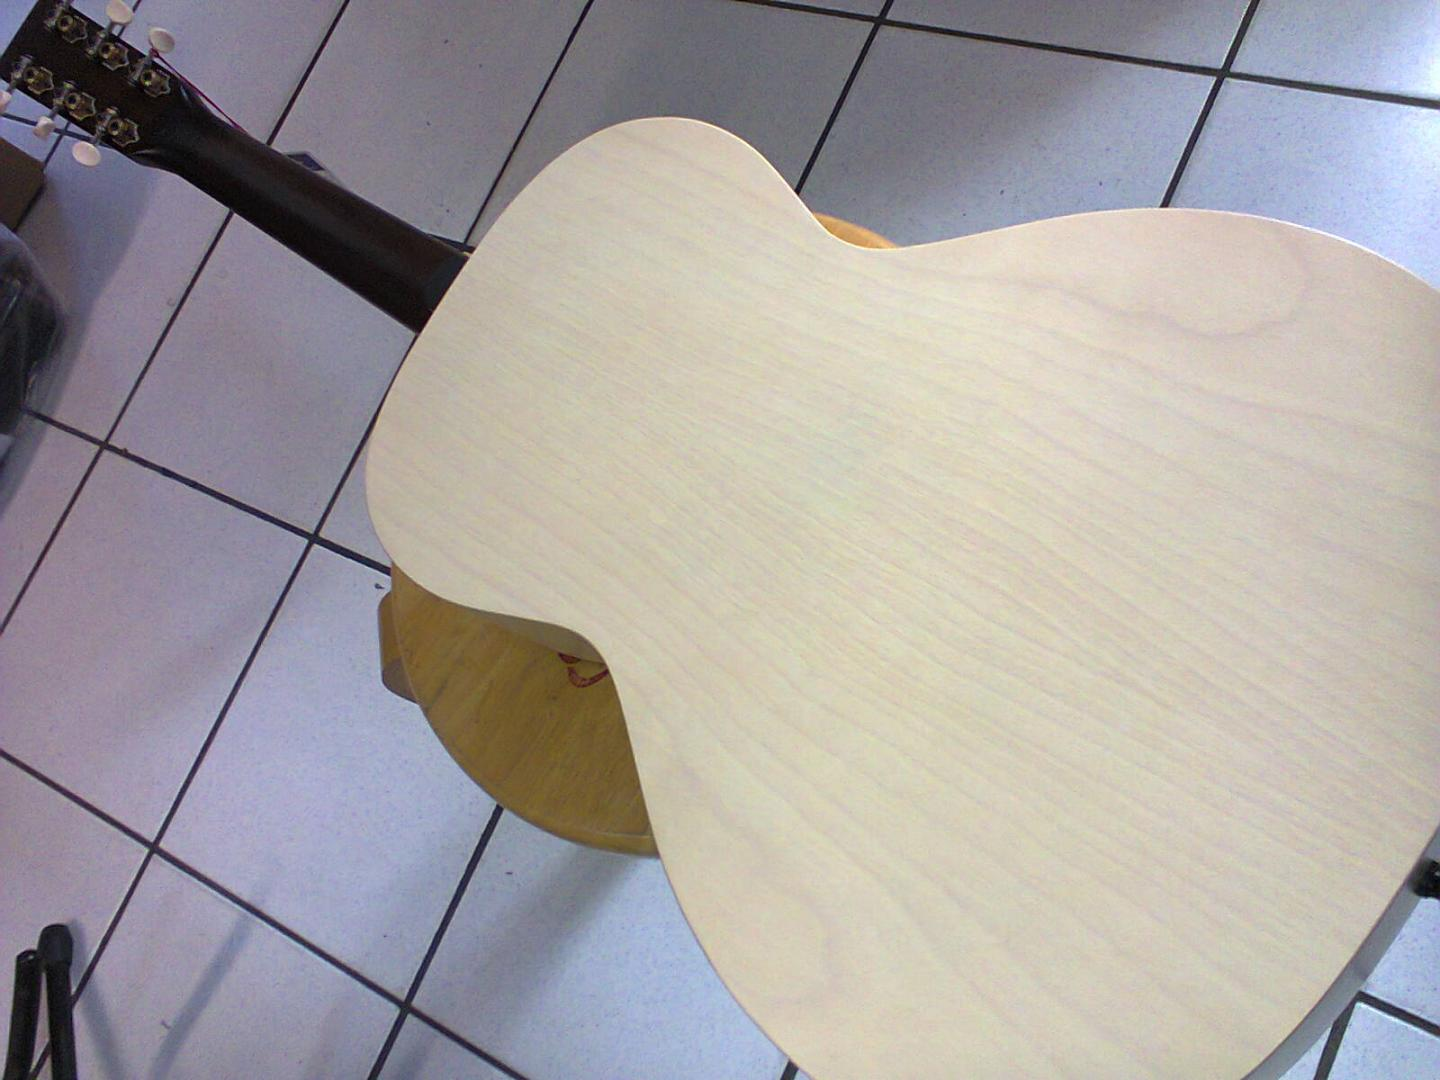 ART & LUTHERIE ROADHOUSE PARLOR FADED CREAM A/E 045389 GUITARE ELECTRO ACOUSTIQUE PARLOR **FAITE A LA MAIN ATELIER GODIN QUEBEC** FADED CREAM SATINE. TABLE EPICEA MASSIF. FOND & ECLISSES MERISIER. MANCHE ERABLE ARGENTE. TOUCHE & CHEVALET PALISSANDRE. PRE AMPLI FISHMAN. MECANIQUE VINTAGE